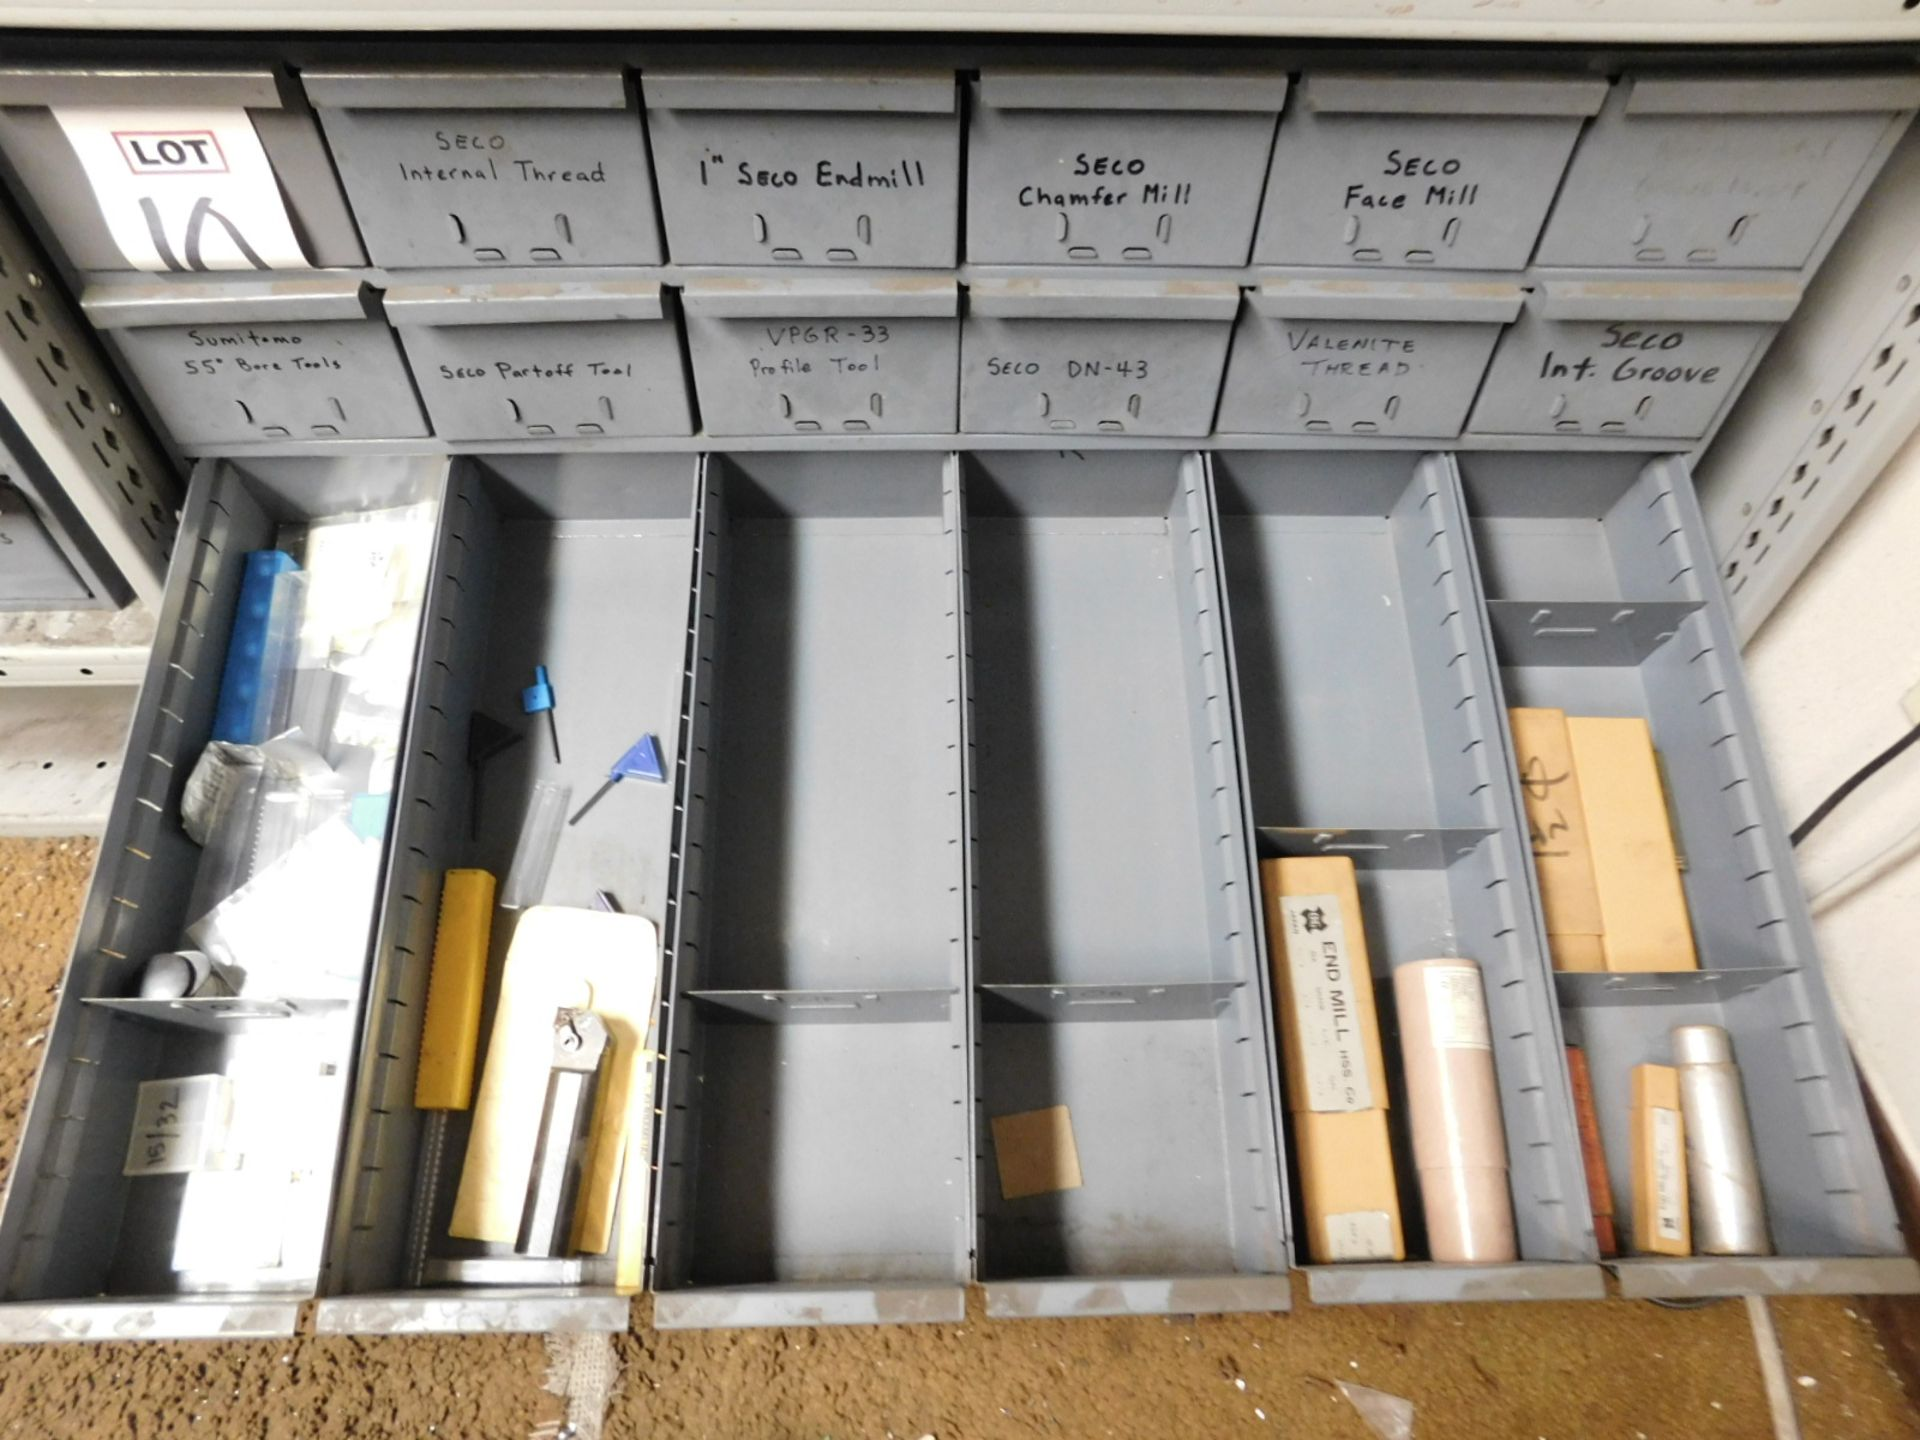 Lot 10 - LOT - 18-DRAWER CUBBYHOLE PARTS CABINET, W/ CONTENTS TO INCLUDE: BORING BARS, CUTTING INSERTS, END